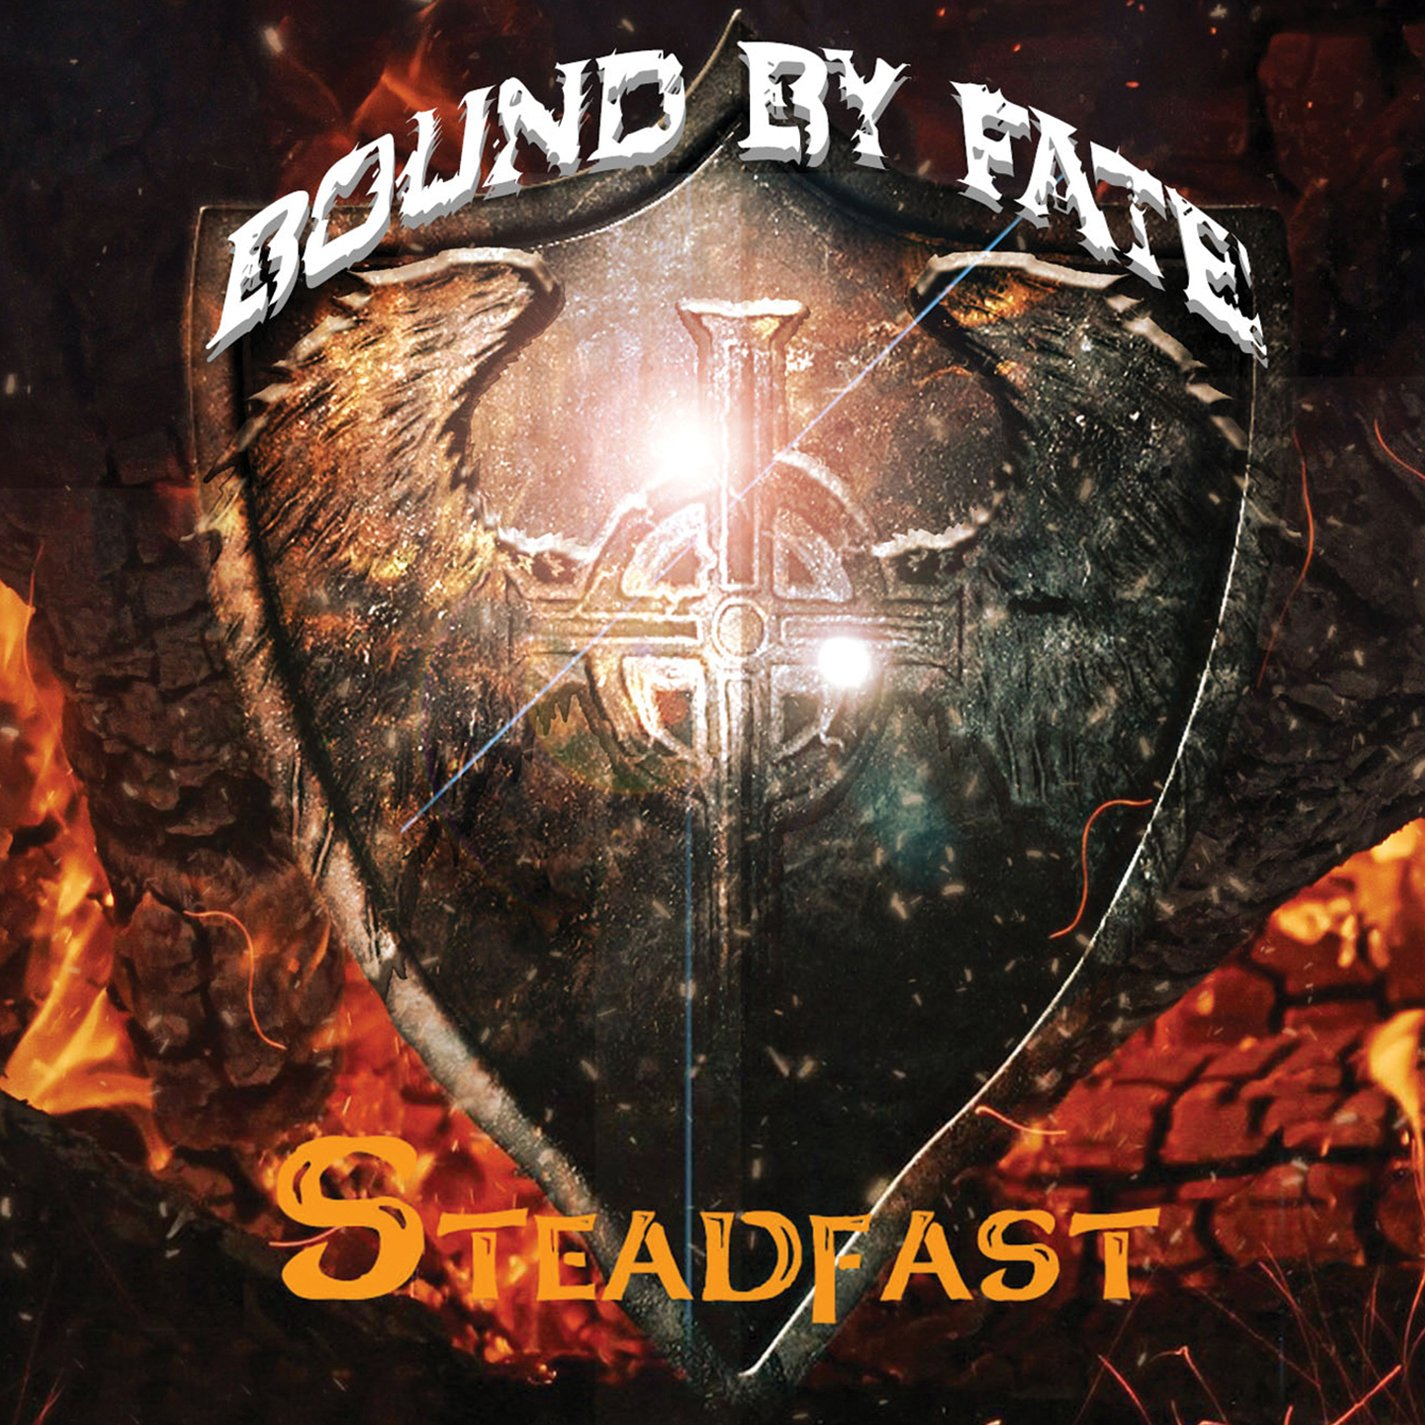 CD : Bound by Fate - Steadfast (CD)